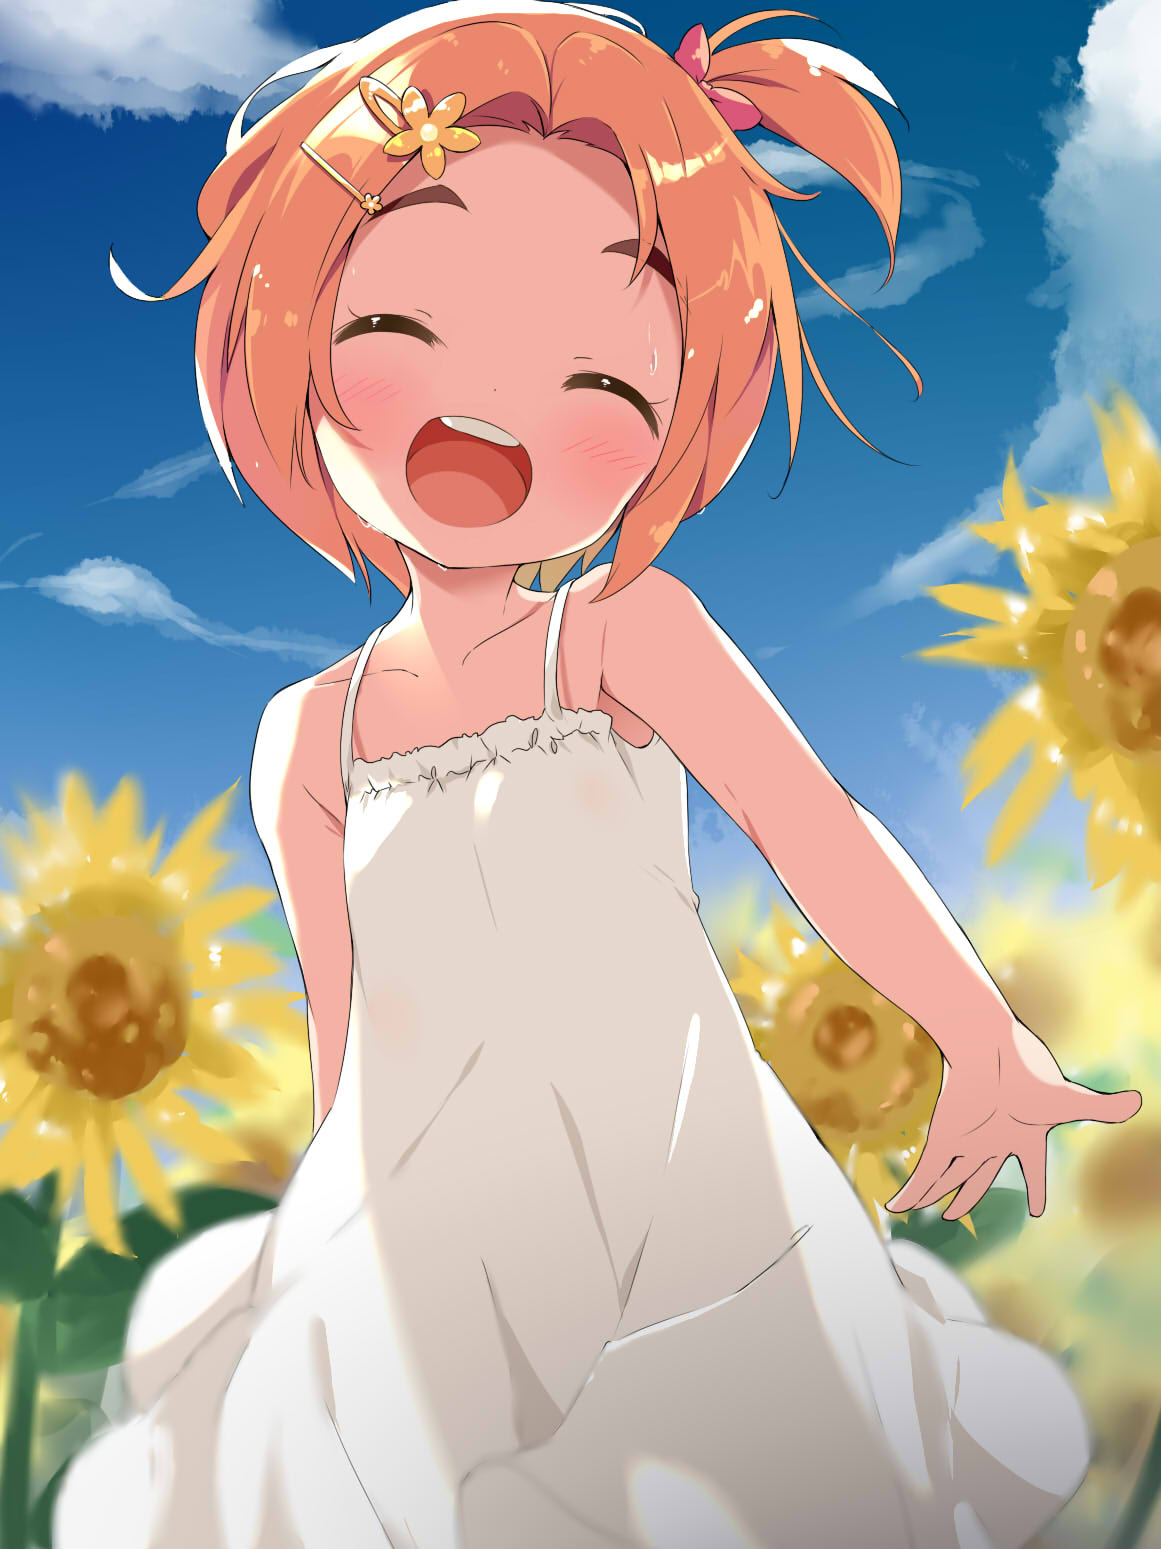 1girl :d ^_^ bangs bare_arms bare_shoulders blurry blurry_background blush bow brown_hair child closed_eyes collarbone commentary_request day depth_of_field dress facing_viewer field flower flower_field forehead hair_bow hair_flower hair_ornament hairclip highres idolmaster idolmaster_cinderella_girls makuran one_side_up open_mouth outdoors parted_bangs pink_bow round_teeth ryuuzaki_kaoru short_hair sleeveless sleeveless_dress smile solo sunflower teeth thick_eyebrows upper_teeth white_dress yellow_flower